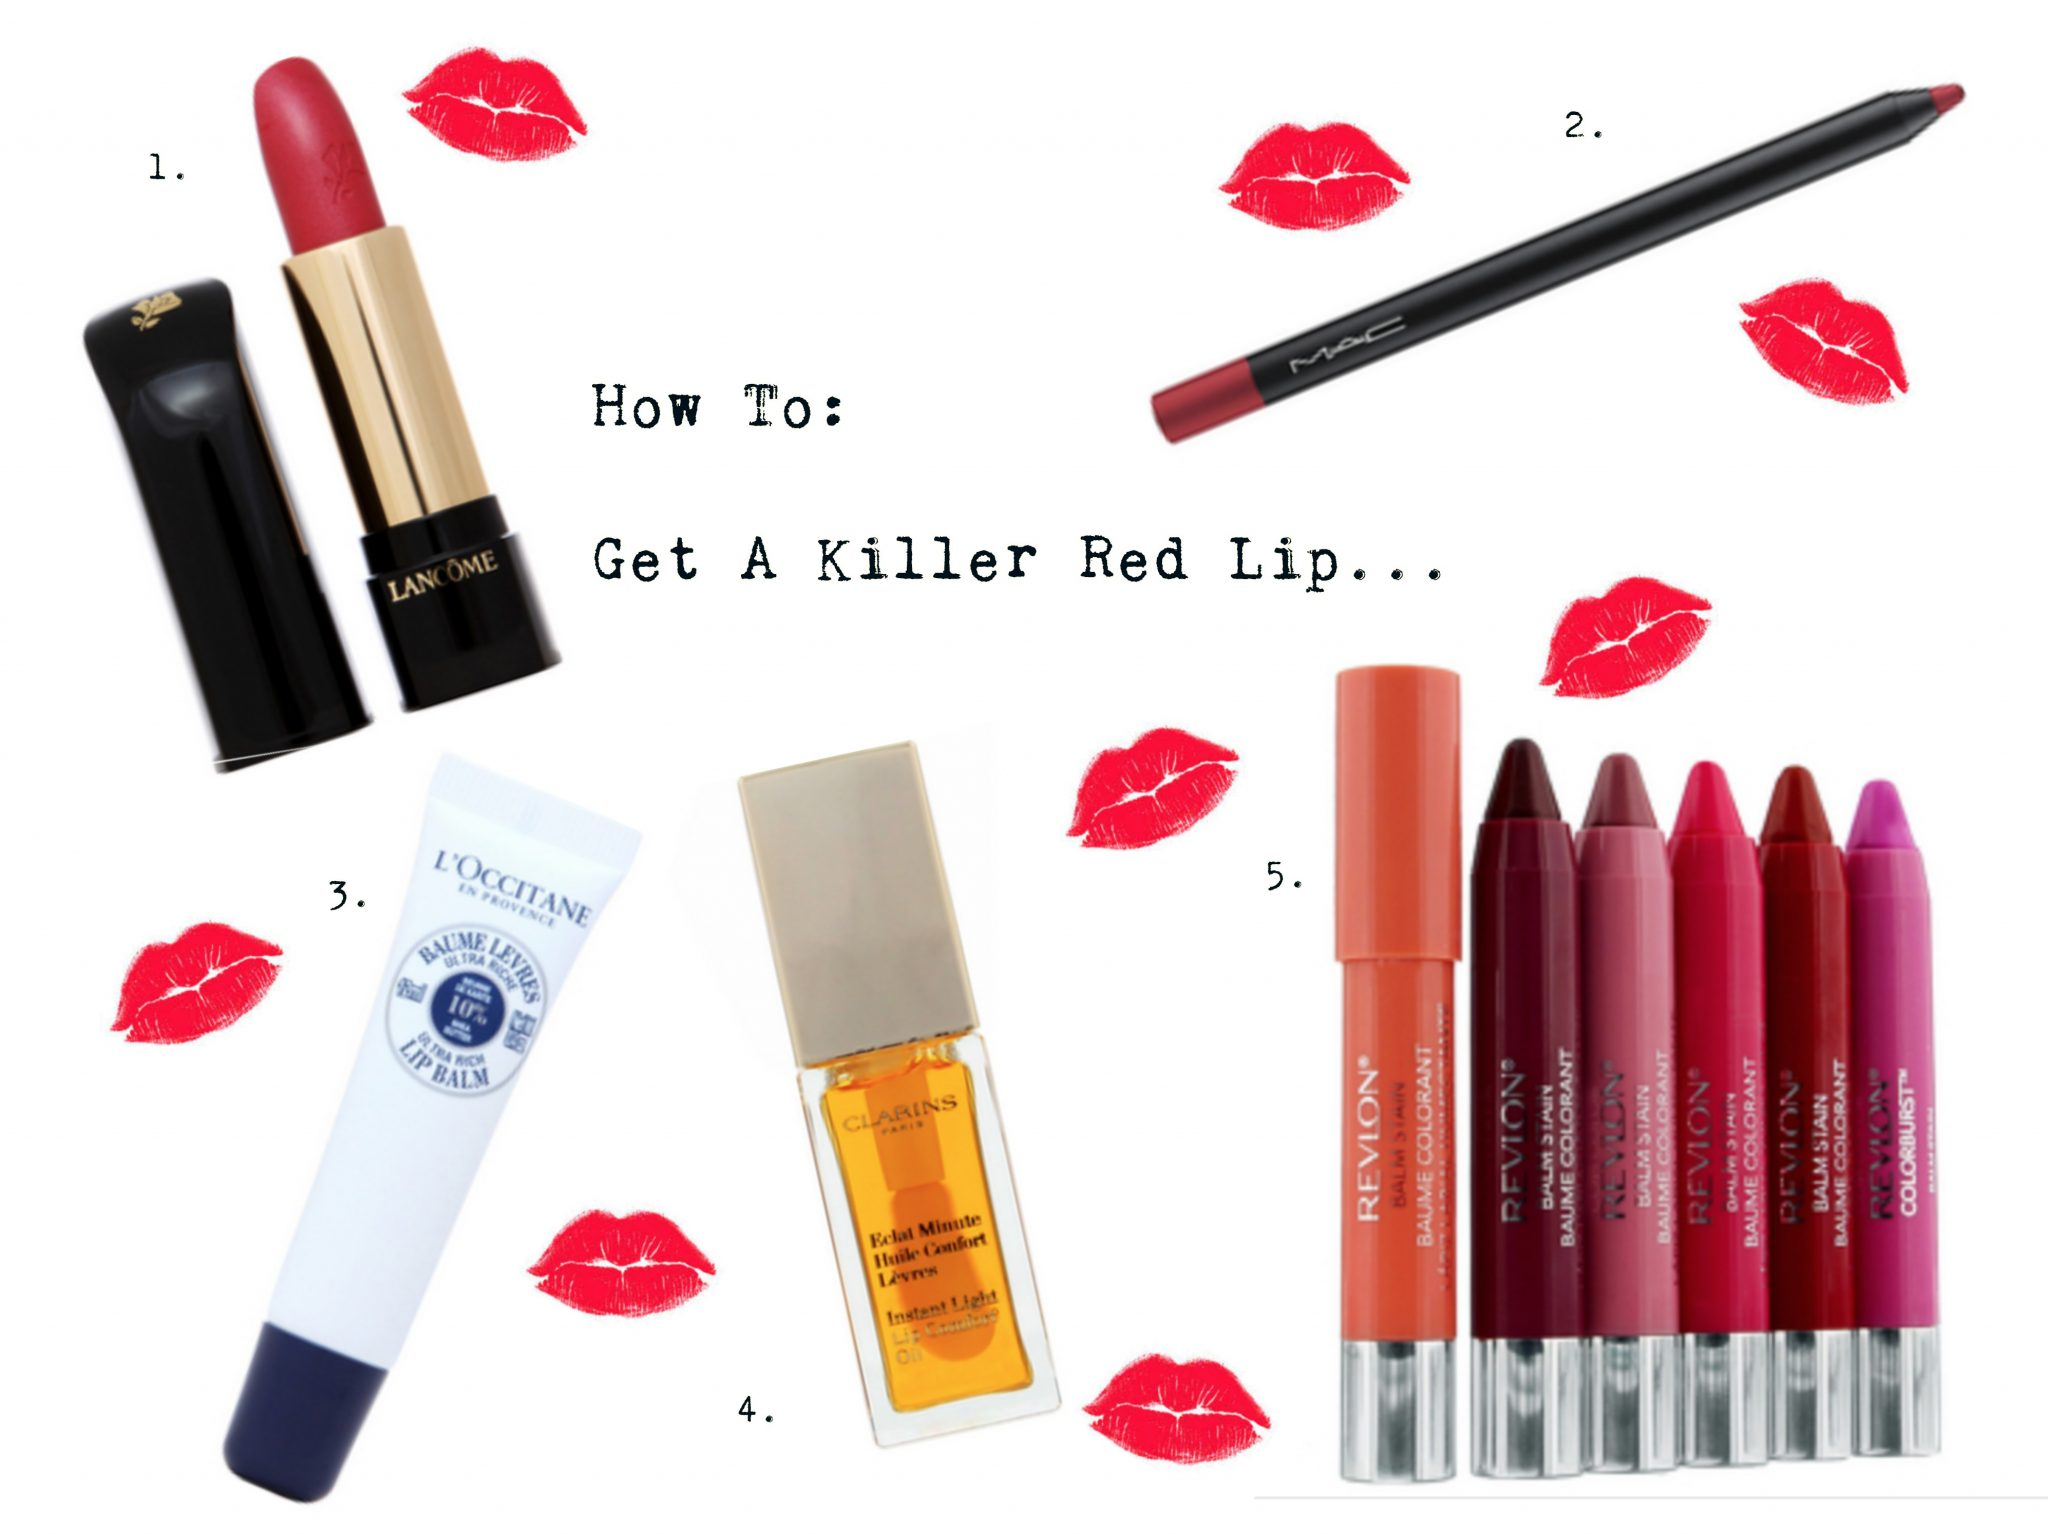 How to get a killer red lip